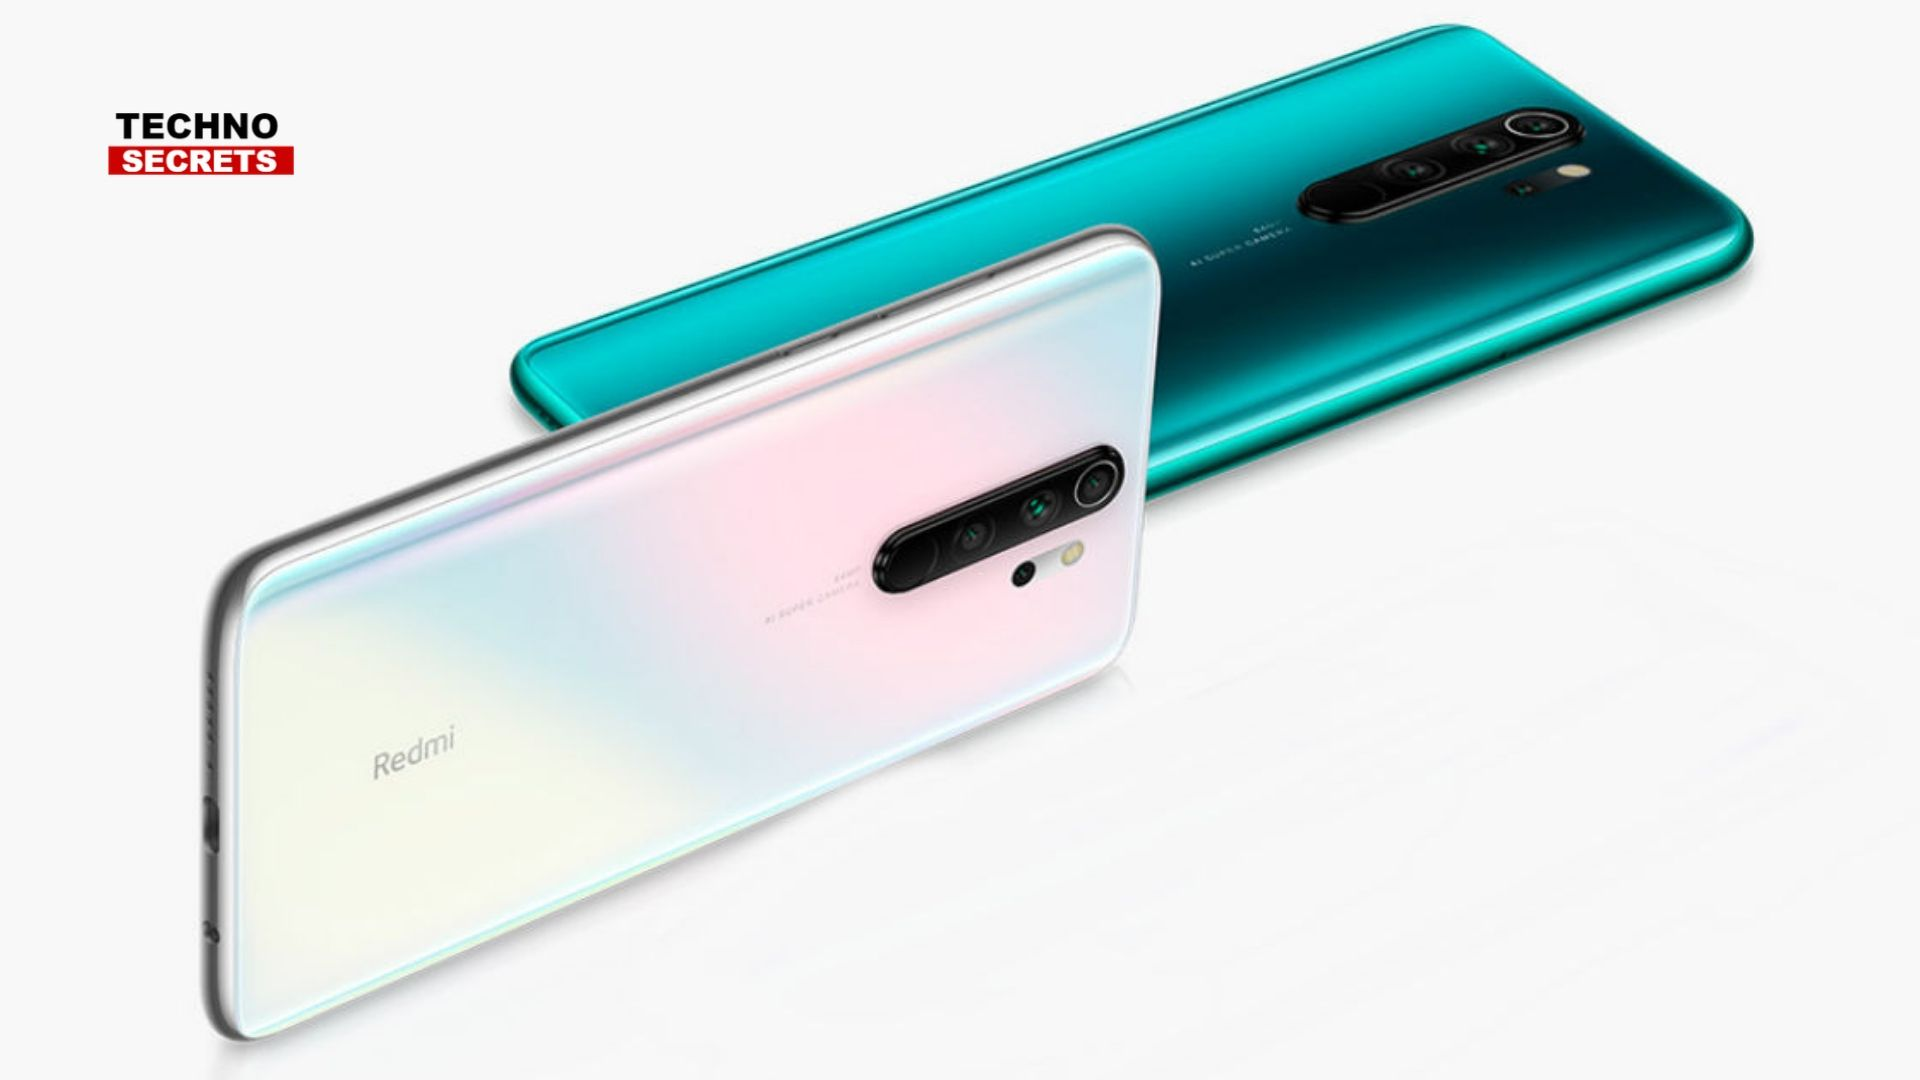 Redmi Note 8 Pro Next Sale on September 8, After First Successful Sale